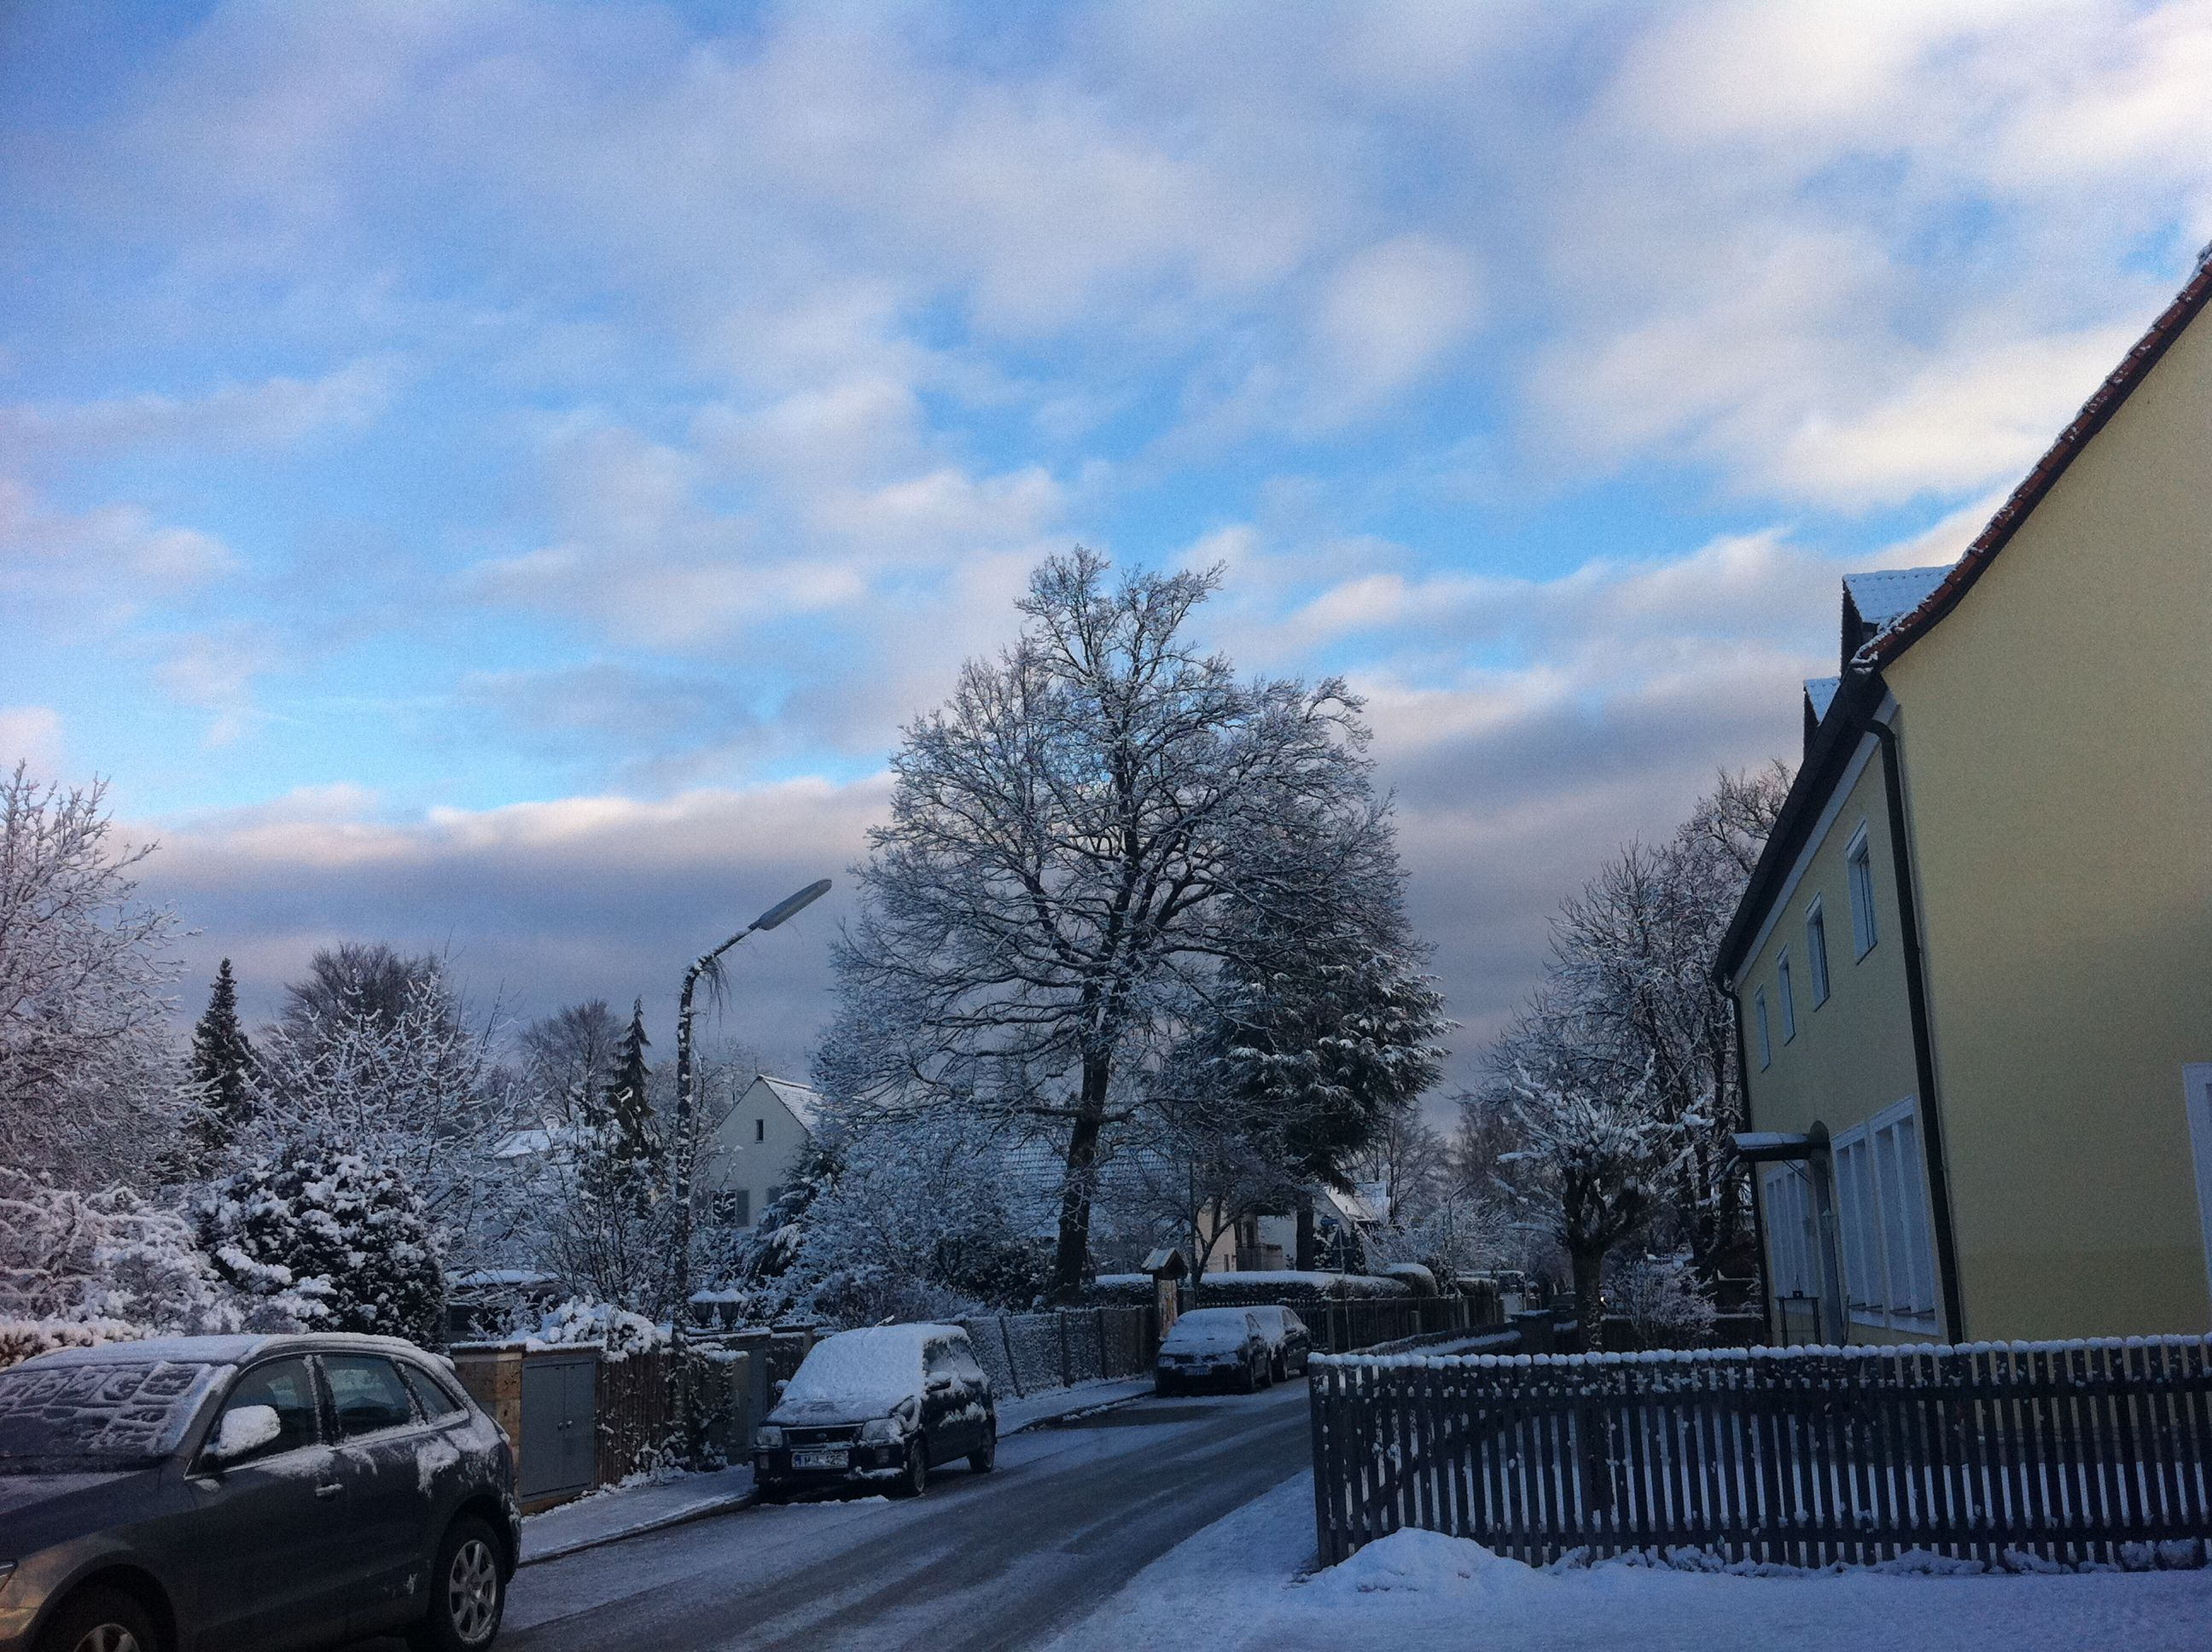 Snow in Pullach